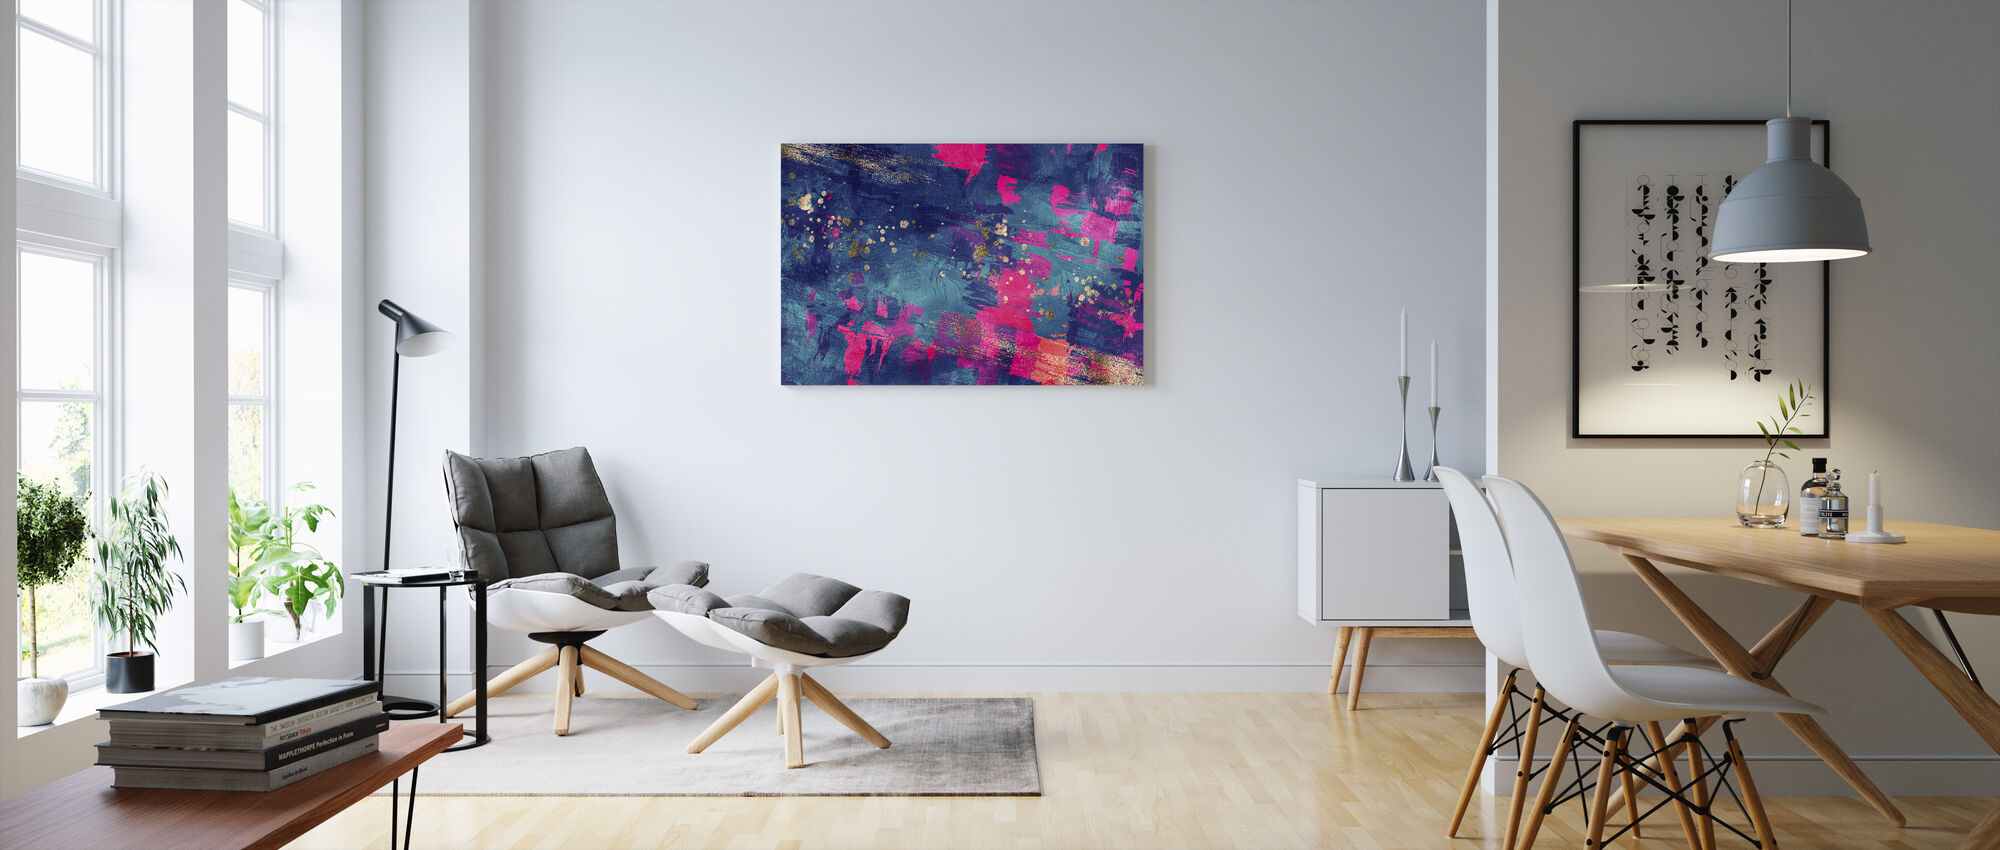 Abstract Oil Painting - Canvas print - Living Room